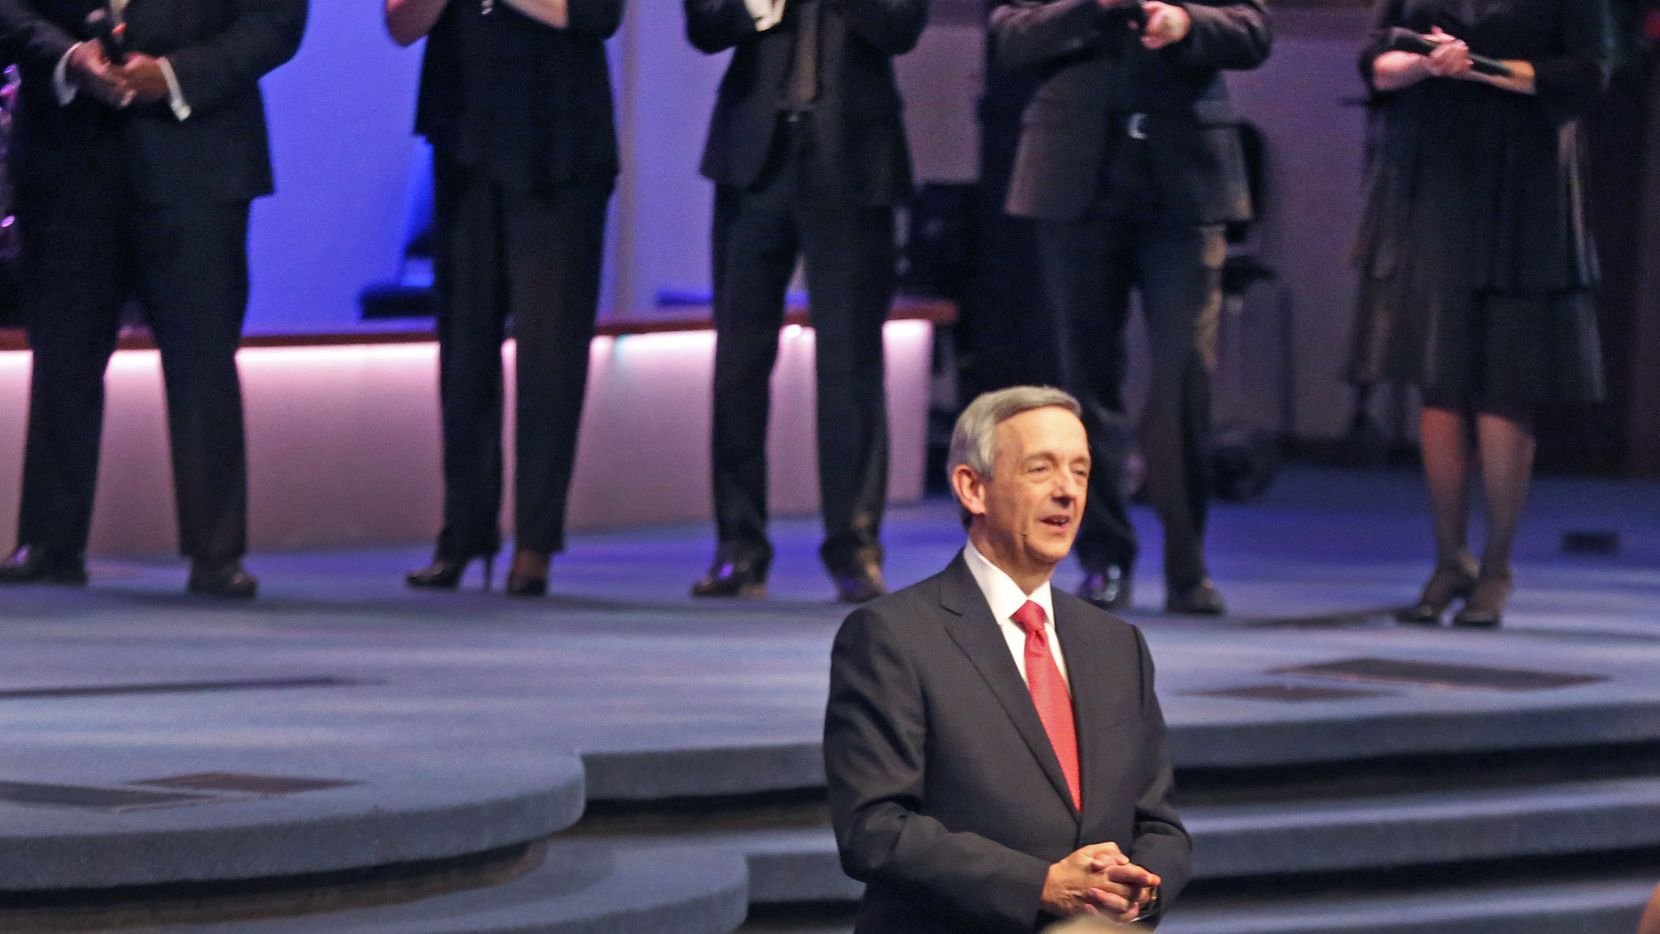 First Baptist Dallas pastor Dr. Robert Jeffress greets the crowd during the 150th anniversary service at First Baptist Church of Dallas Sunday, July 29, 2018. (Louis DeLuca/The Dallas Morning News)